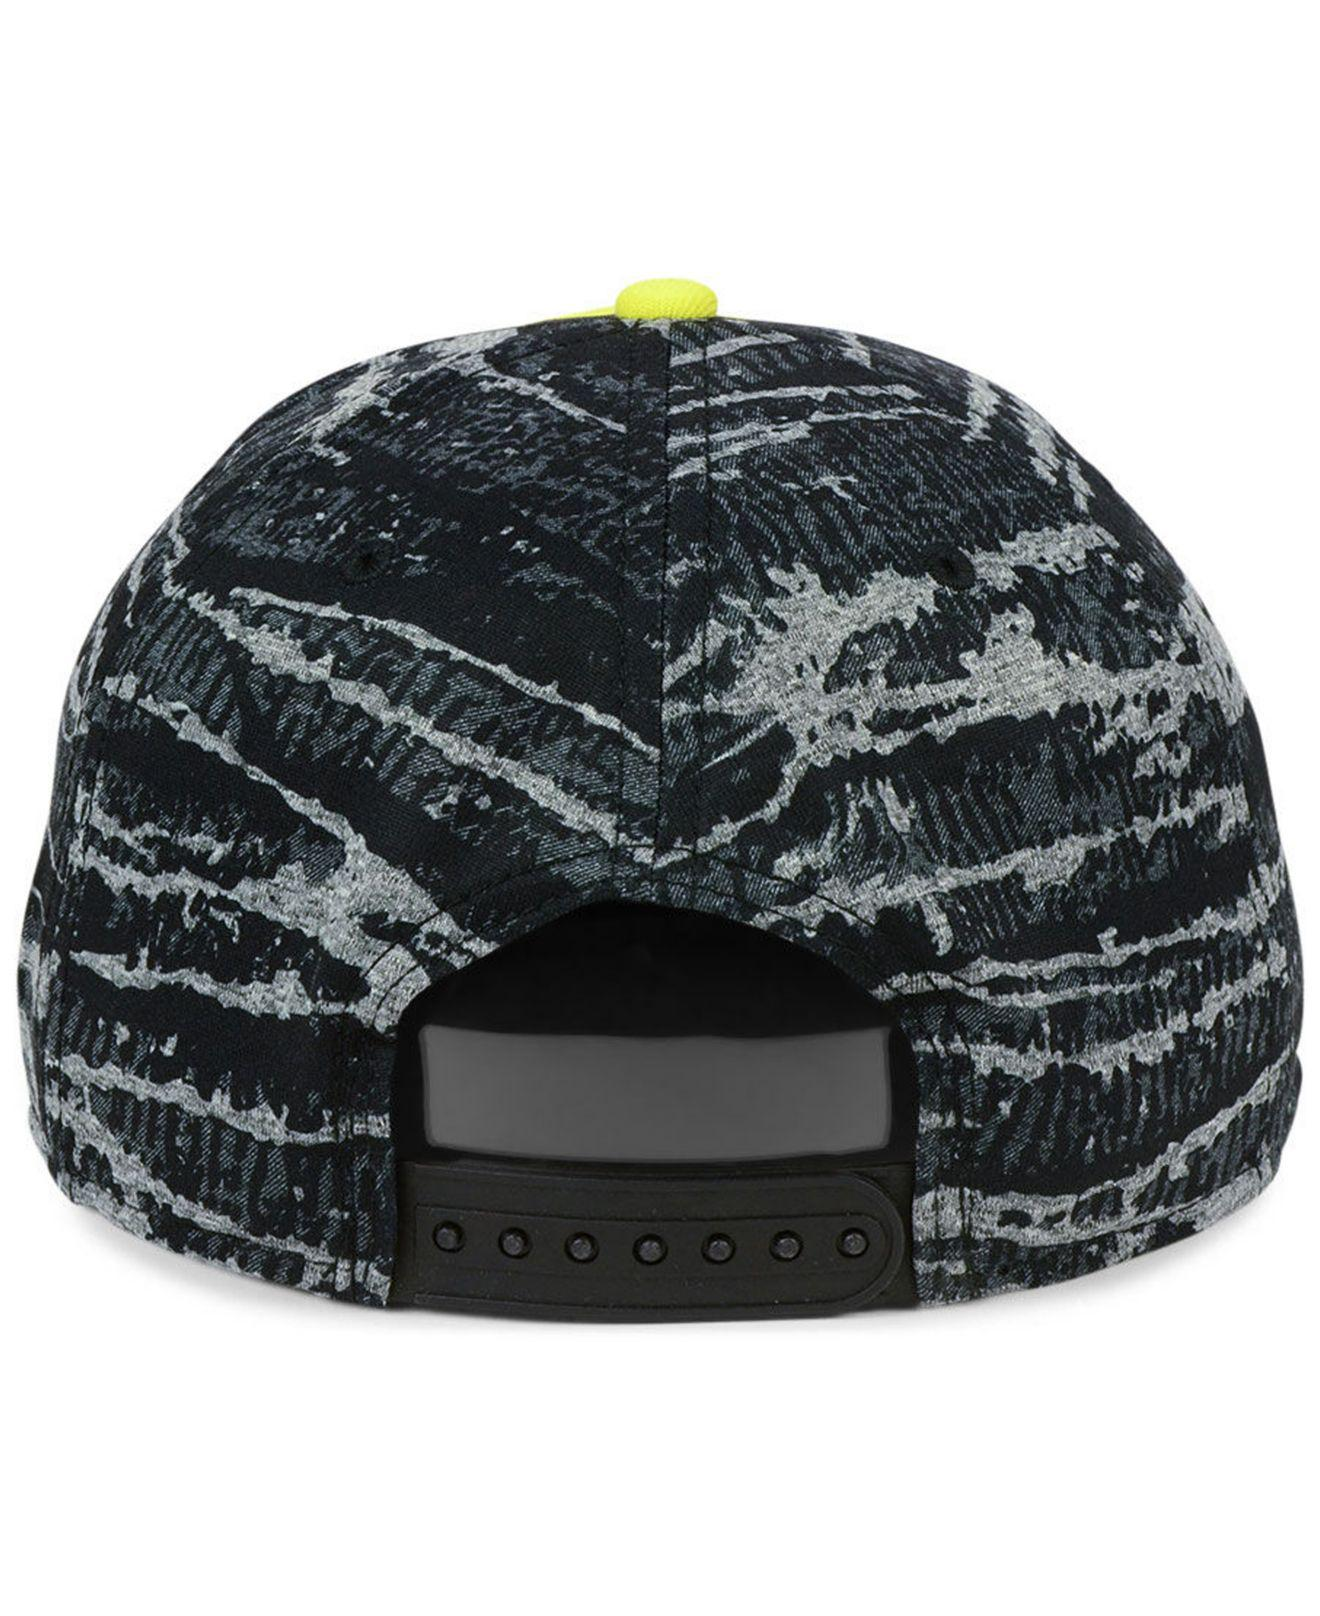 offer discounts huge selection of stable quality outlet store 5279c bfb7b reduced aerobill true fitted baseball cap ...